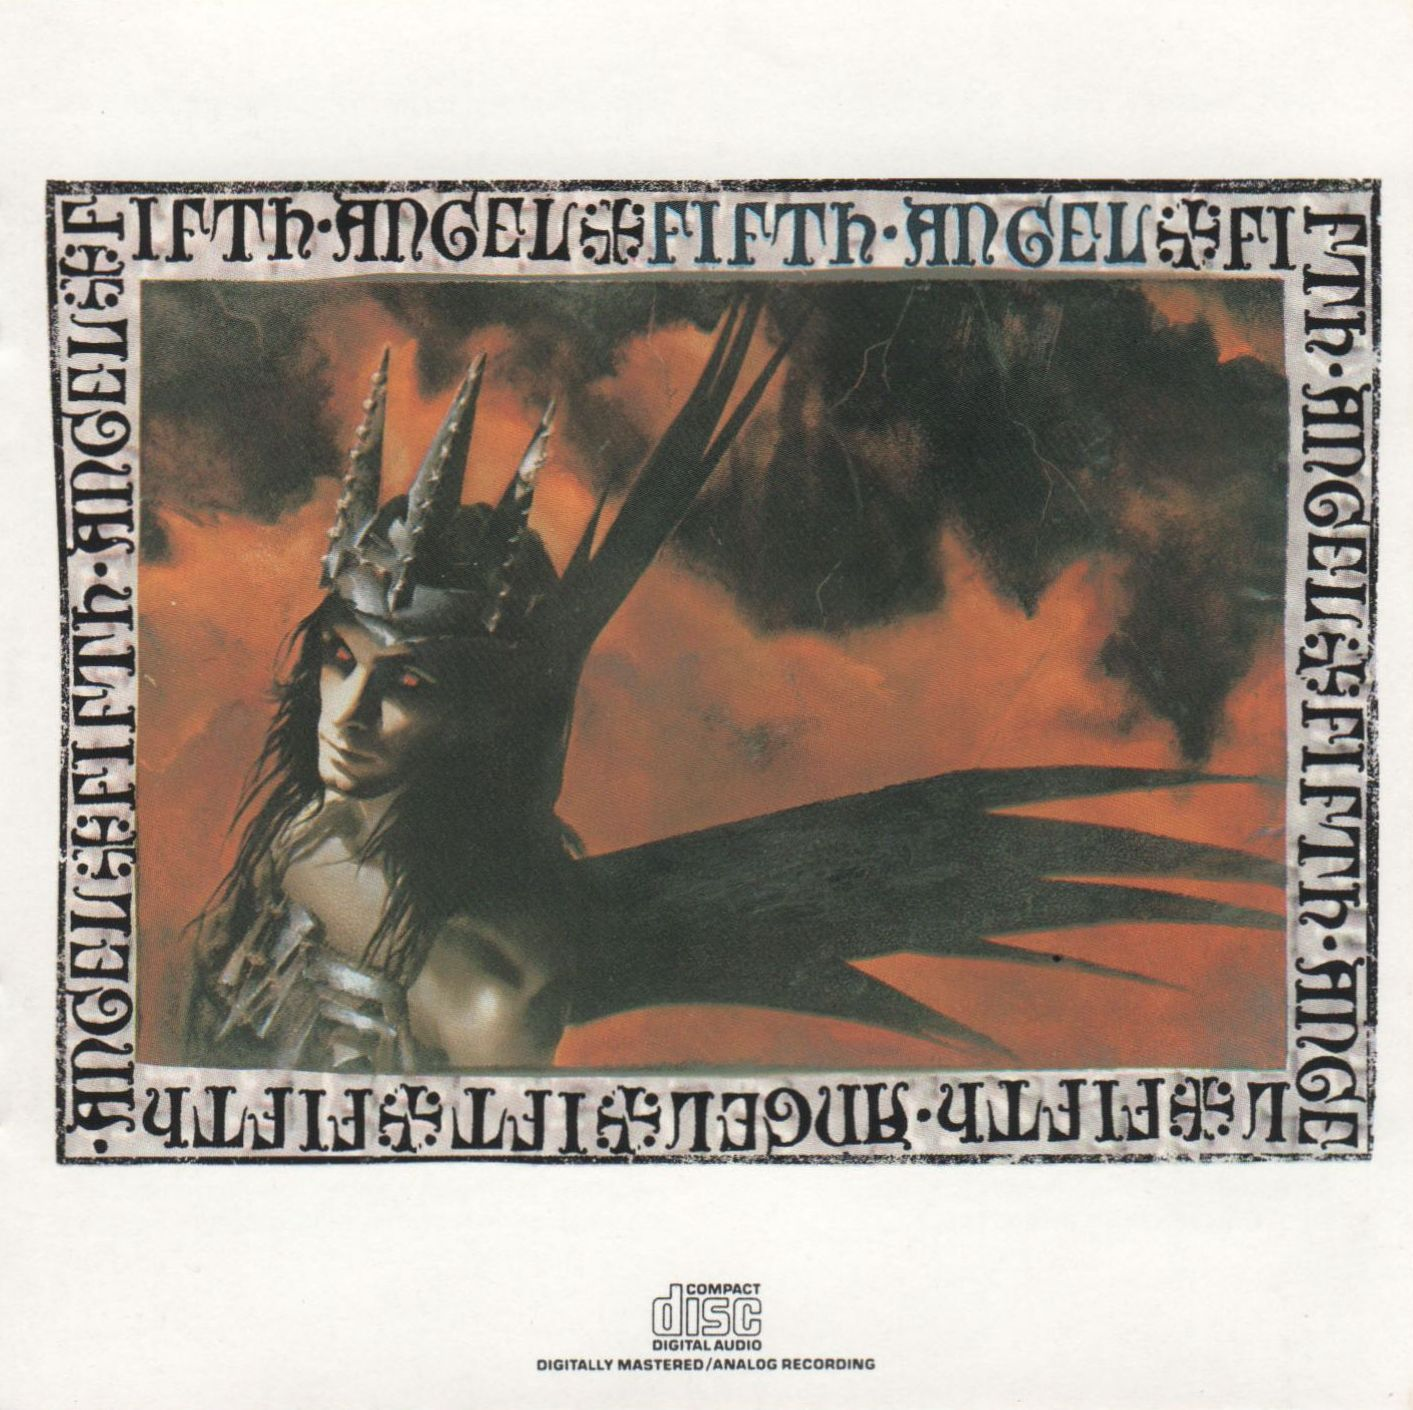 FIFTH ANGEL - FIFTH ANGEL (1986/1988) [FLAC] [FALLEN ANGEL]